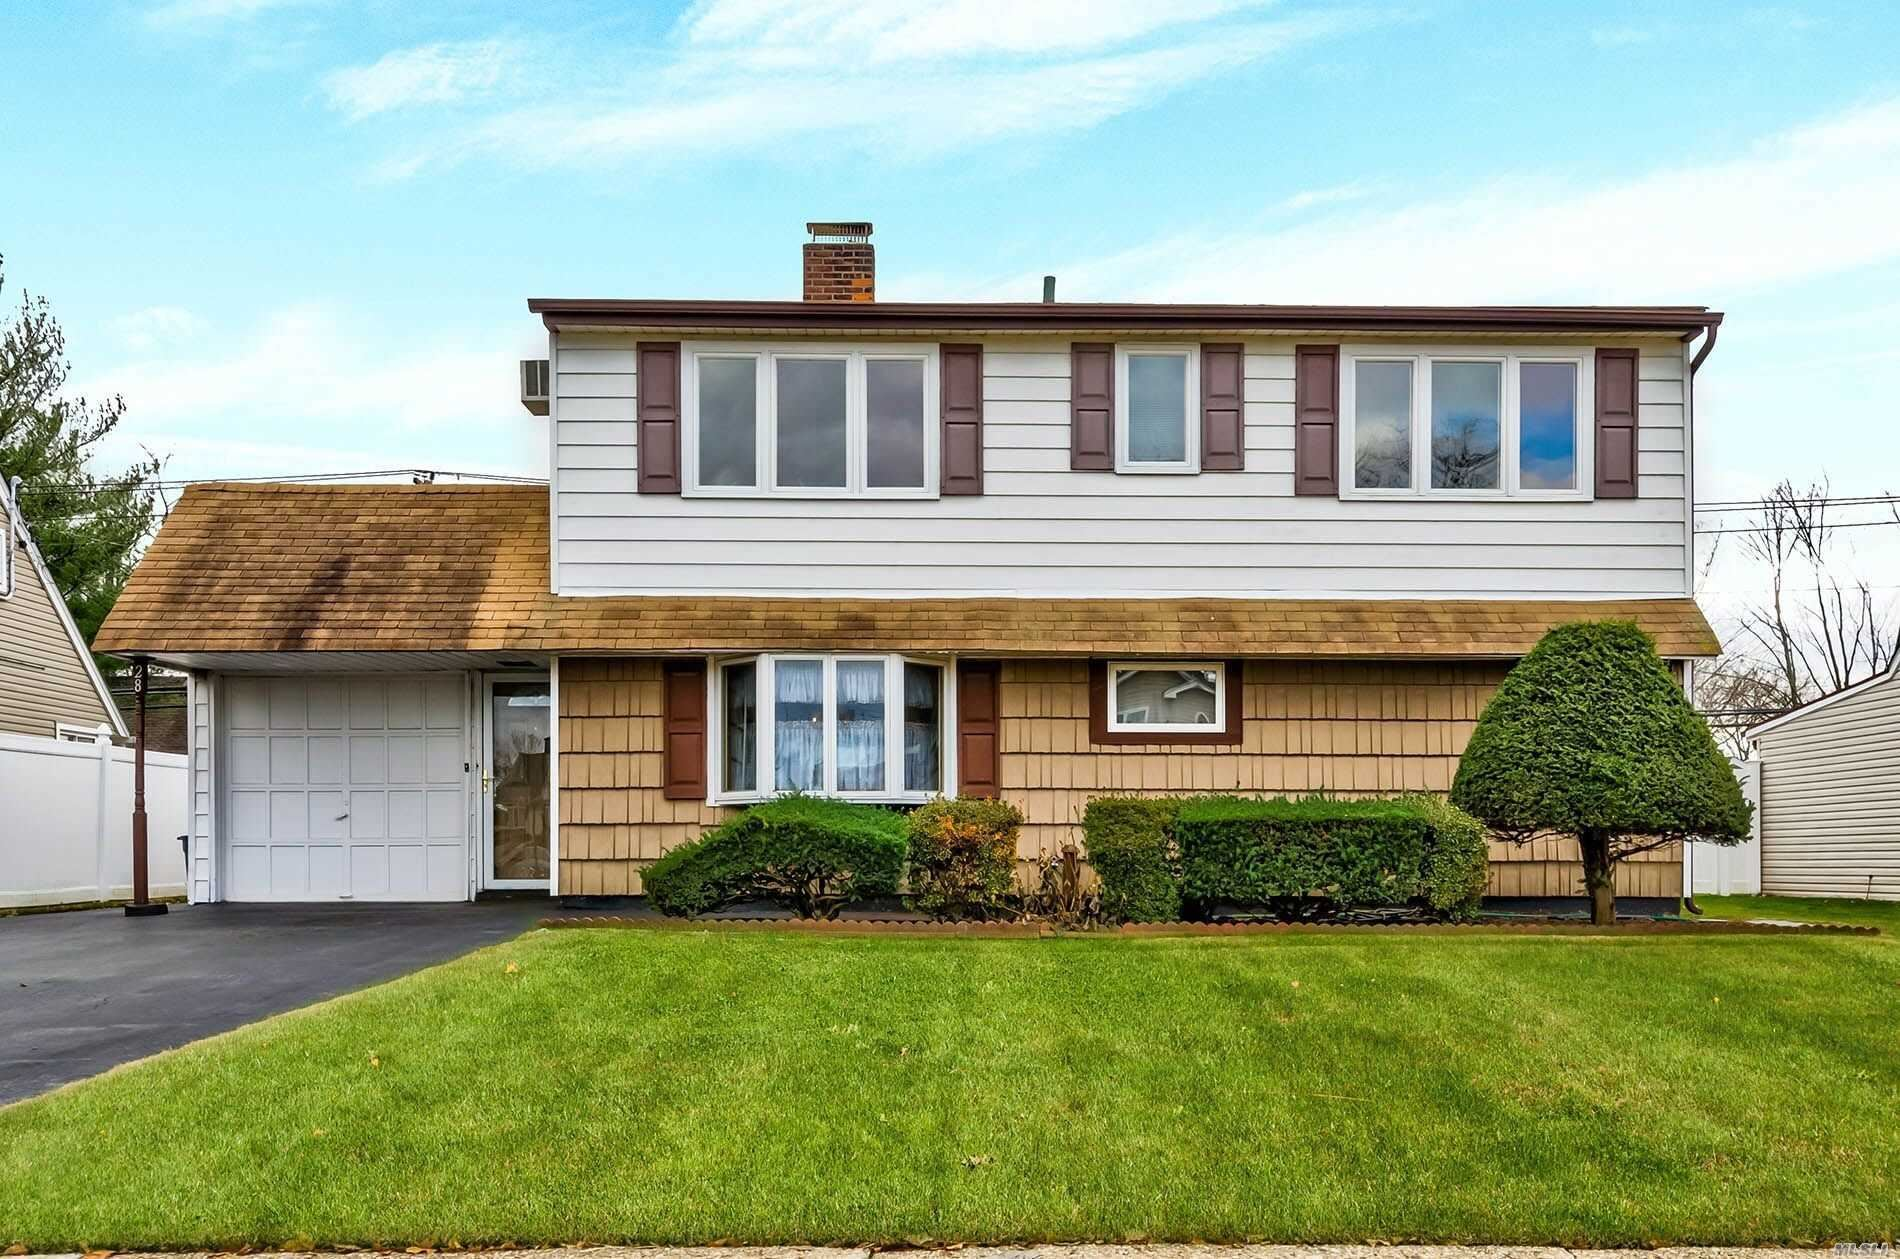 28 Spindle Road, Hicksville, NY 11801 - MLS#: 3185620